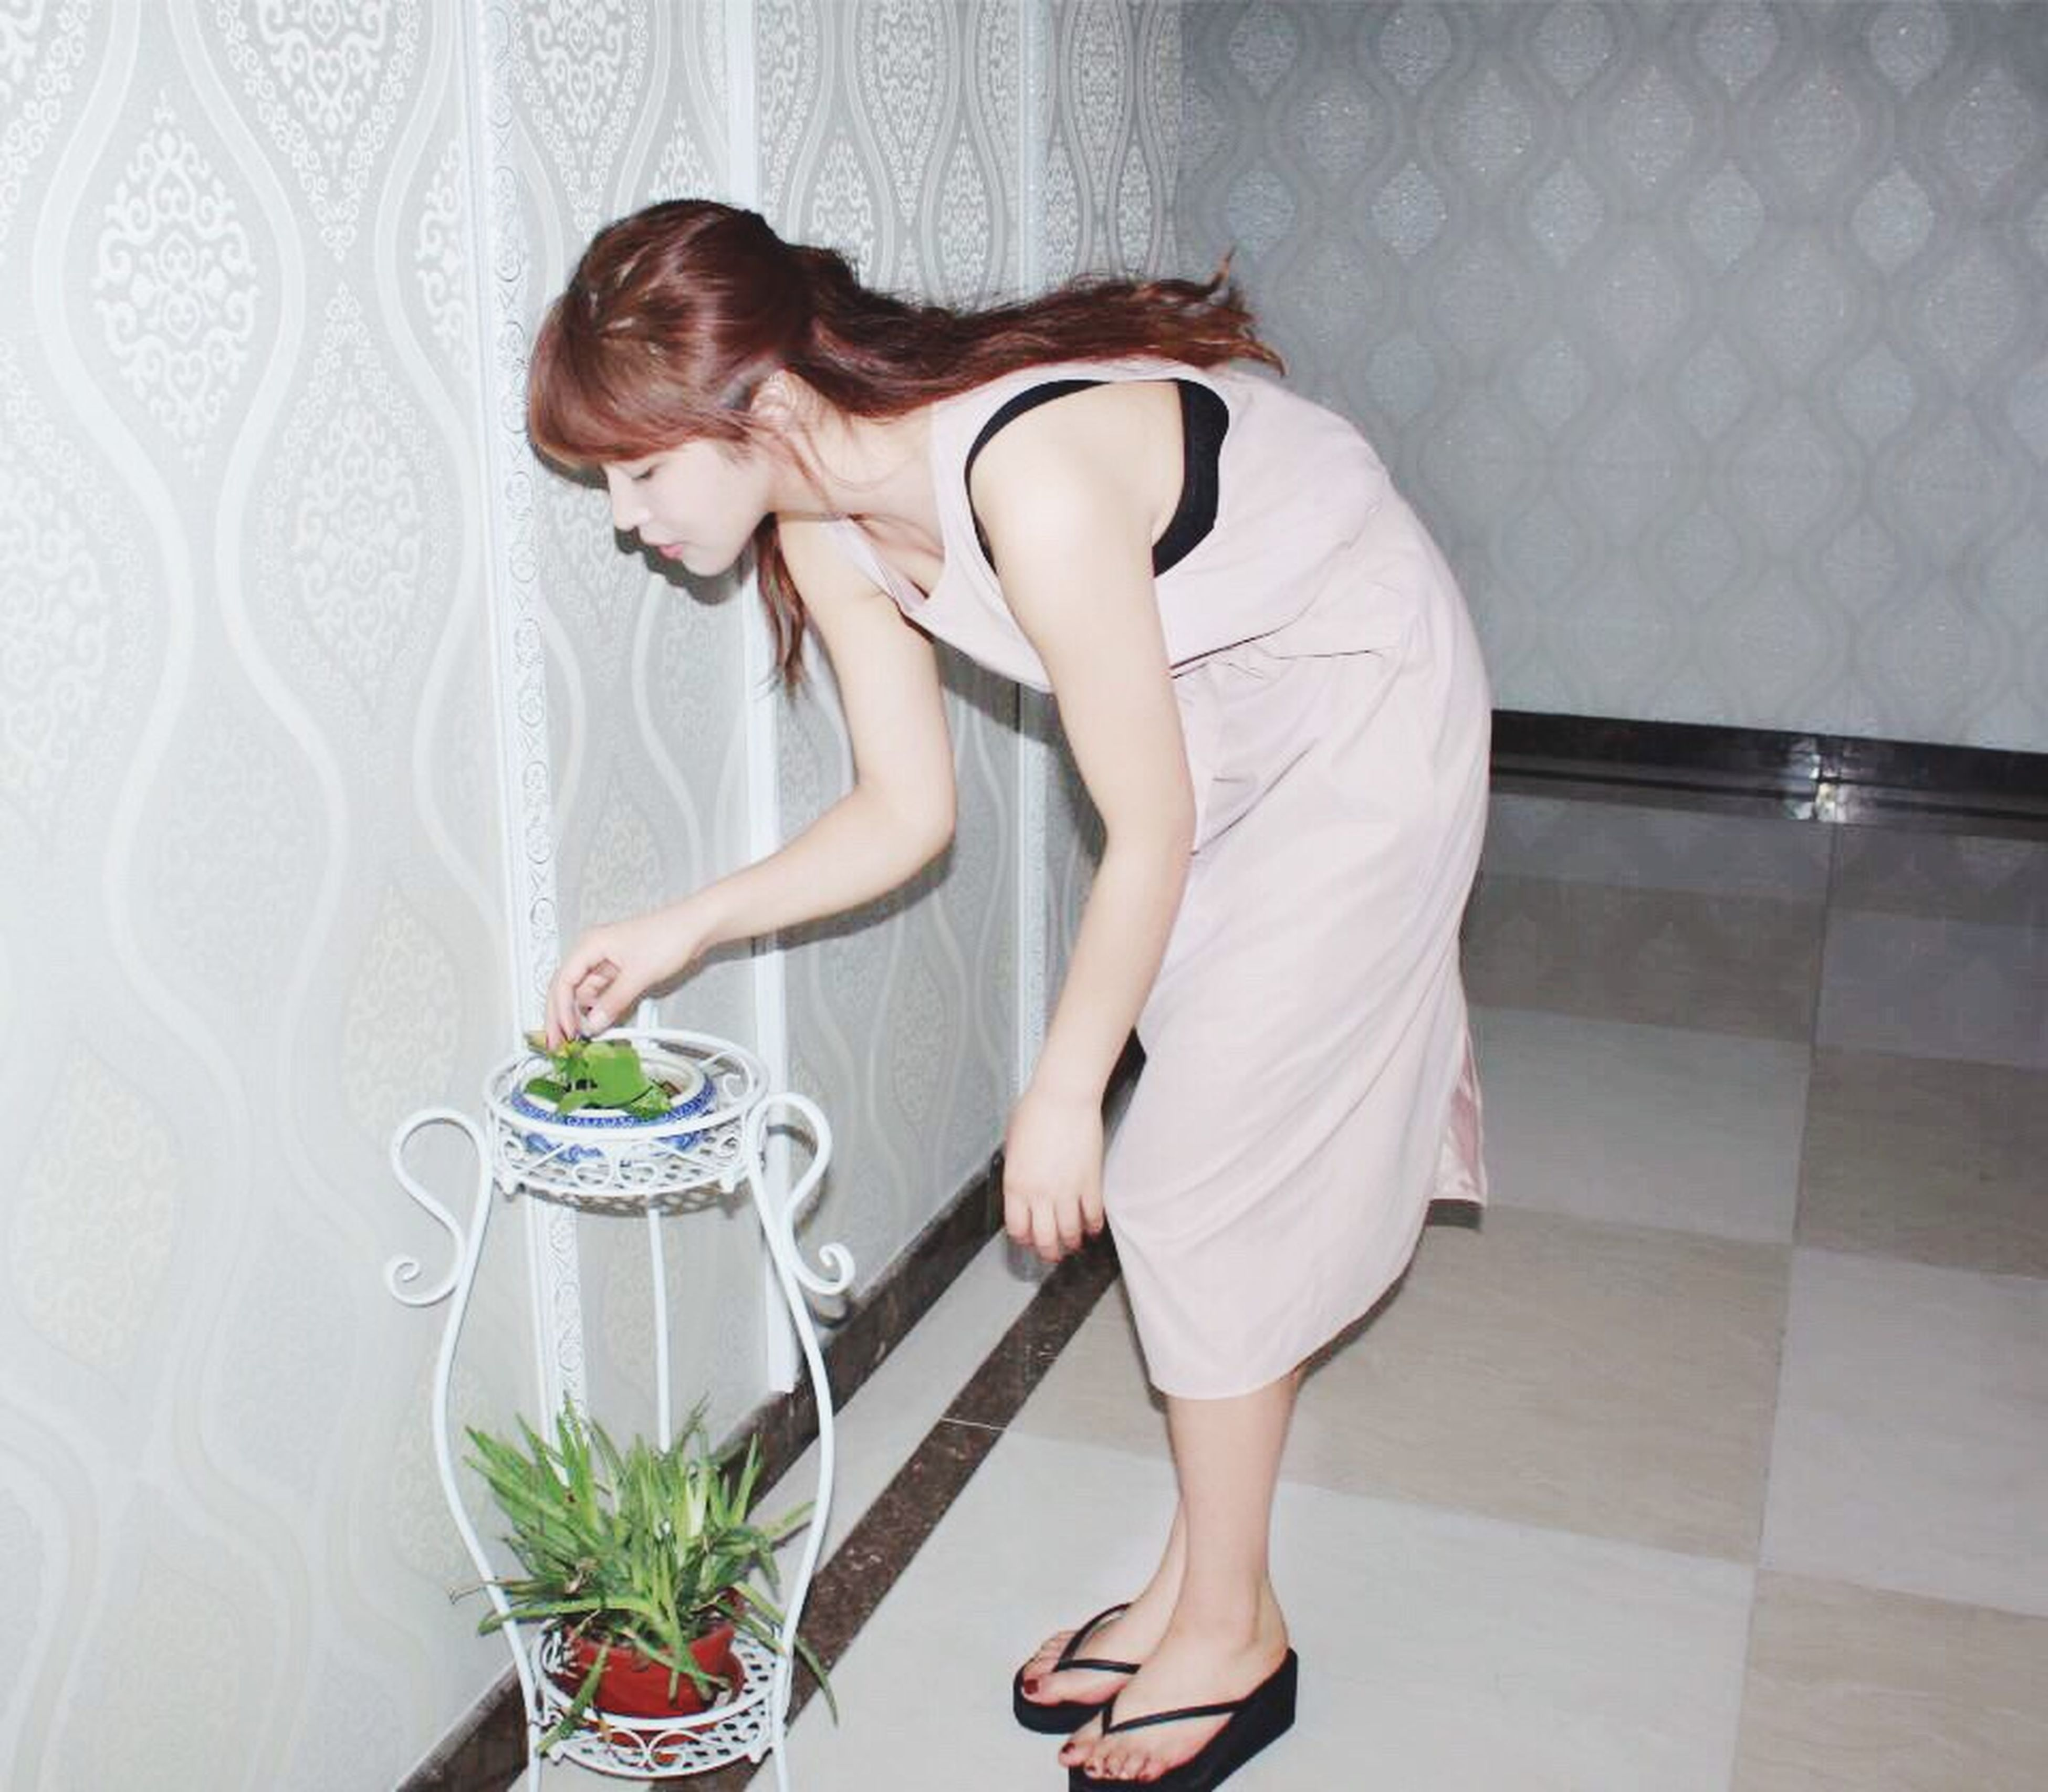 chores, domestic life, indoors, adults only, one woman only, only women, one person, home interior, dusting, mother, people, adult, working, young women, young adult, one young woman only, day